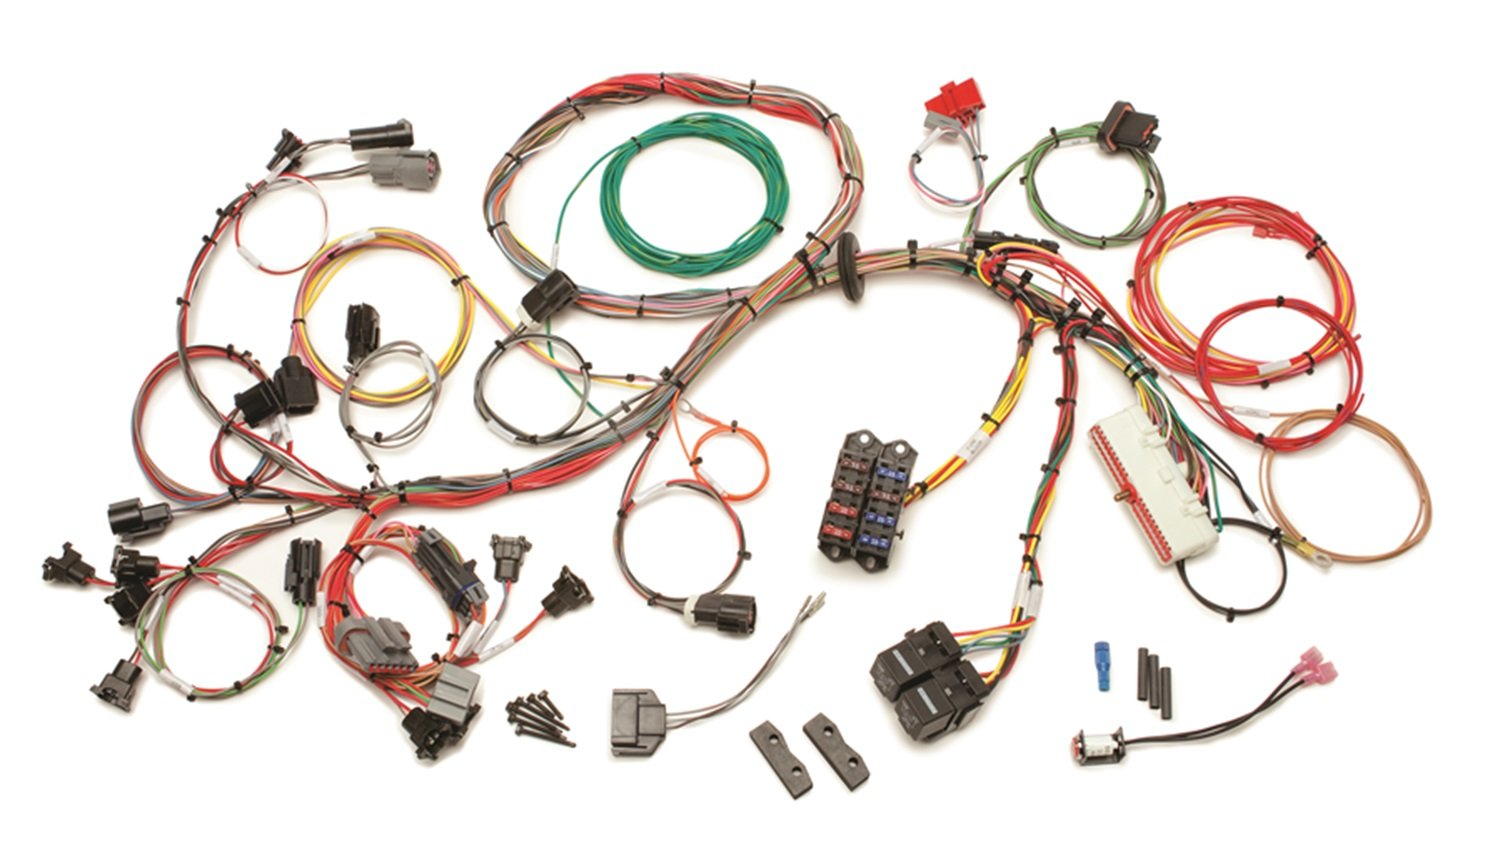 71UX1IBfleL._SL1500_ amazon com painless 60510 5 0l wiring harness automotive ford wiring harness at metegol.co